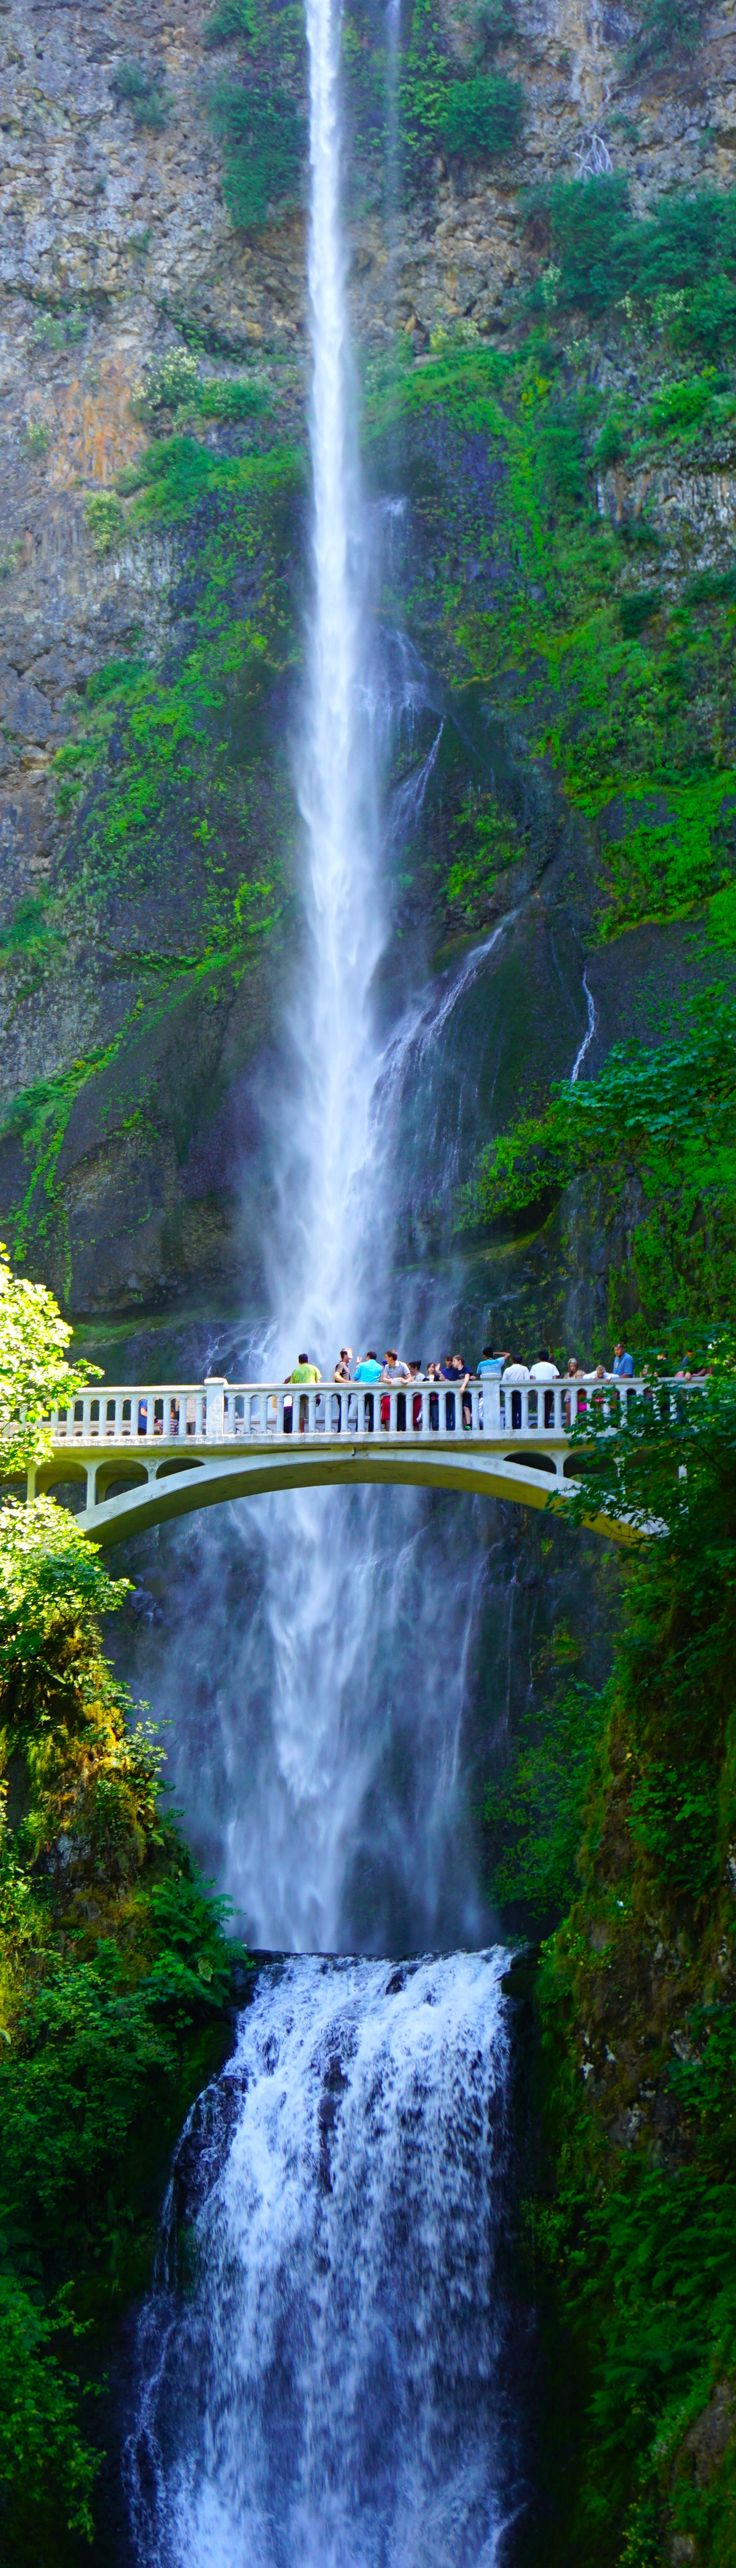 Multnomah Falls...one of the beautiful sites close to Portland, OR. Zach and I fell in love with it the first time we saw it 49 years ago. http://item.taobao.com/item.htm?spm=a1z10.1.w4004-8319415327.2.iDs82C&id=39797003386: